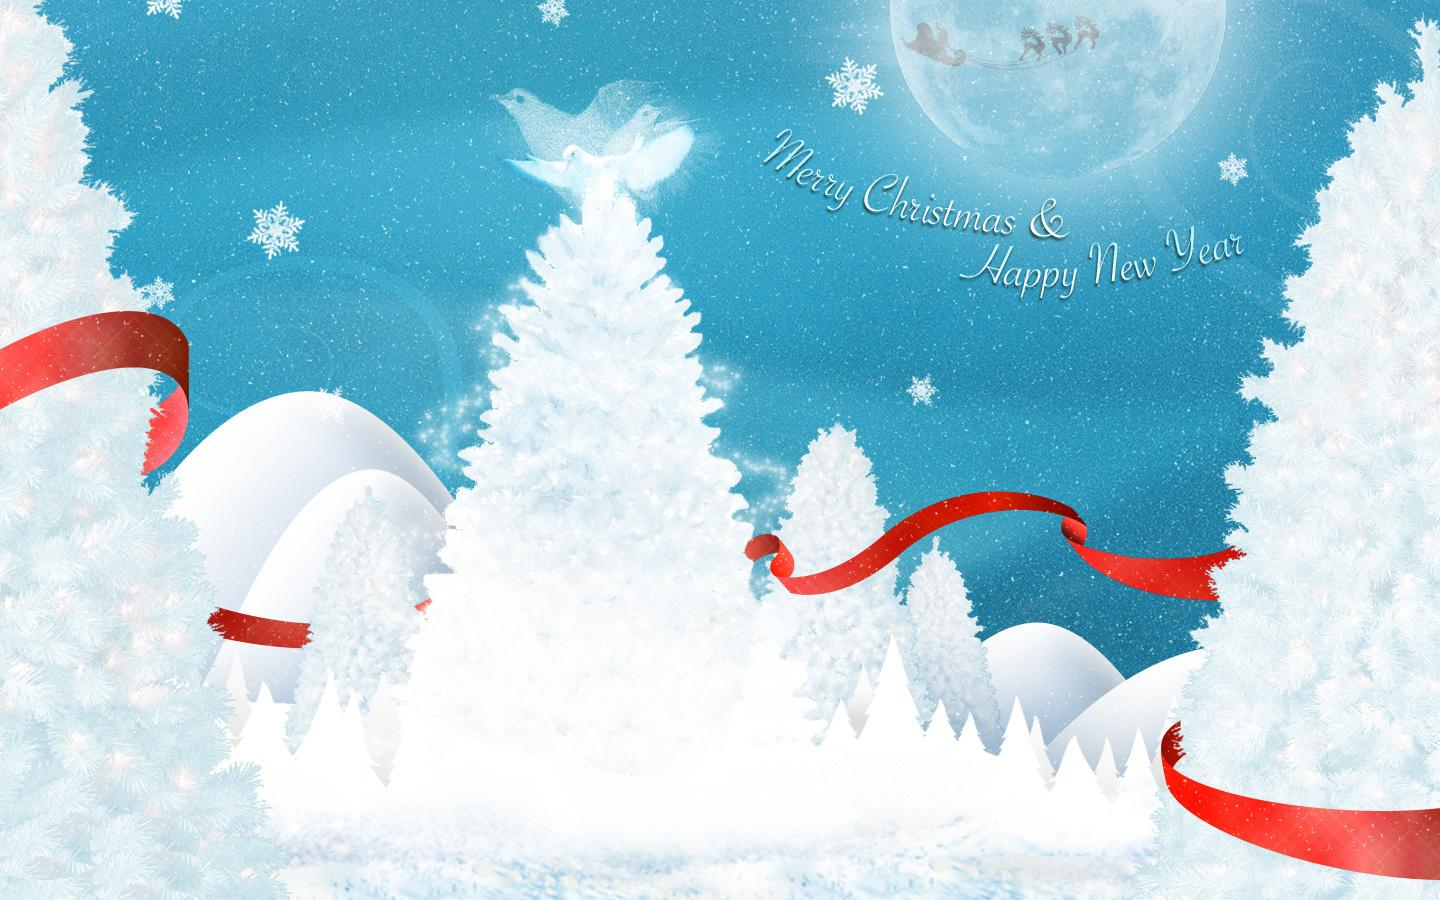 textures, New Year, Christmas texture, Christmas and New Year tree texture background, снег, snow